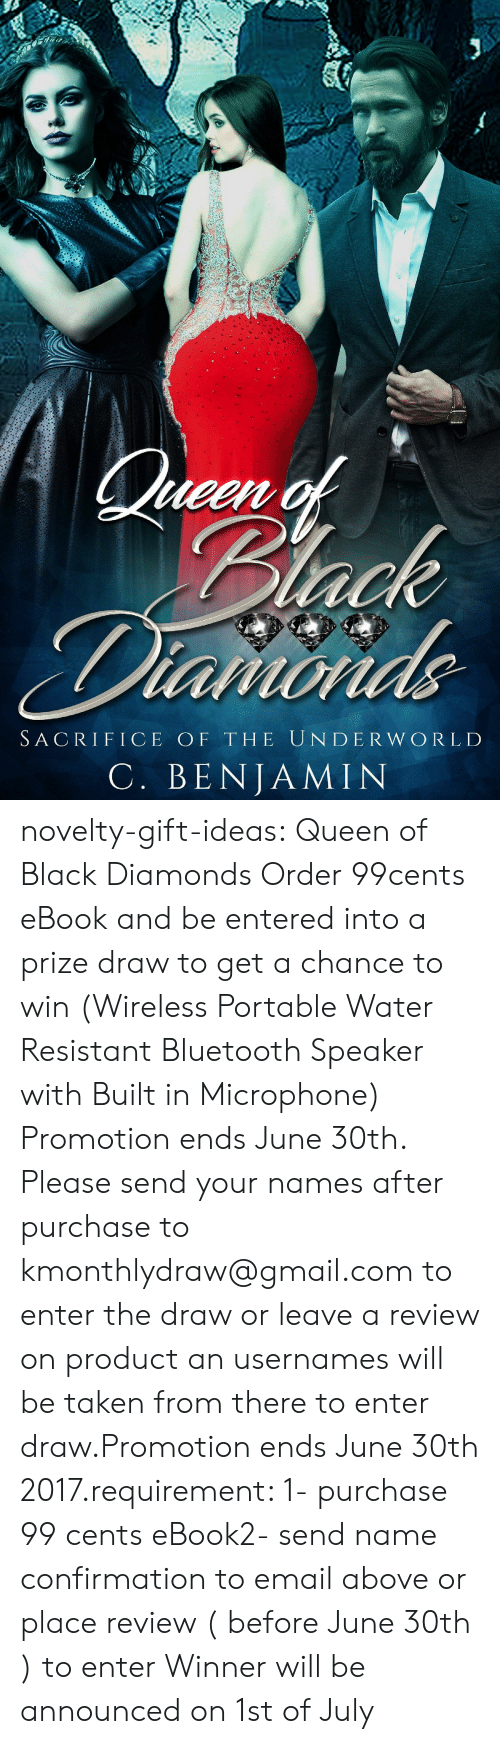 Amazon, Bluetooth, and Taken: SACRIFICE OF THE UN DE R WORLD  C. BENJAMIN novelty-gift-ideas:   Queen of Black Diamonds     Order 99cents eBook and be entered into a prize draw to get a chance to win (Wireless Portable Water Resistant Bluetooth Speaker with Built in Microphone) Promotion ends June 30th. Please send your names after purchase to kmonthlydraw@gmail.com to enter the draw or leave a review on product an usernames will be taken from there to enter draw.Promotion ends June 30th 2017.requirement: 1- purchase 99 cents eBook2- send name confirmation to email above or place review ( before June 30th ) to enter Winner will be announced on 1st of July